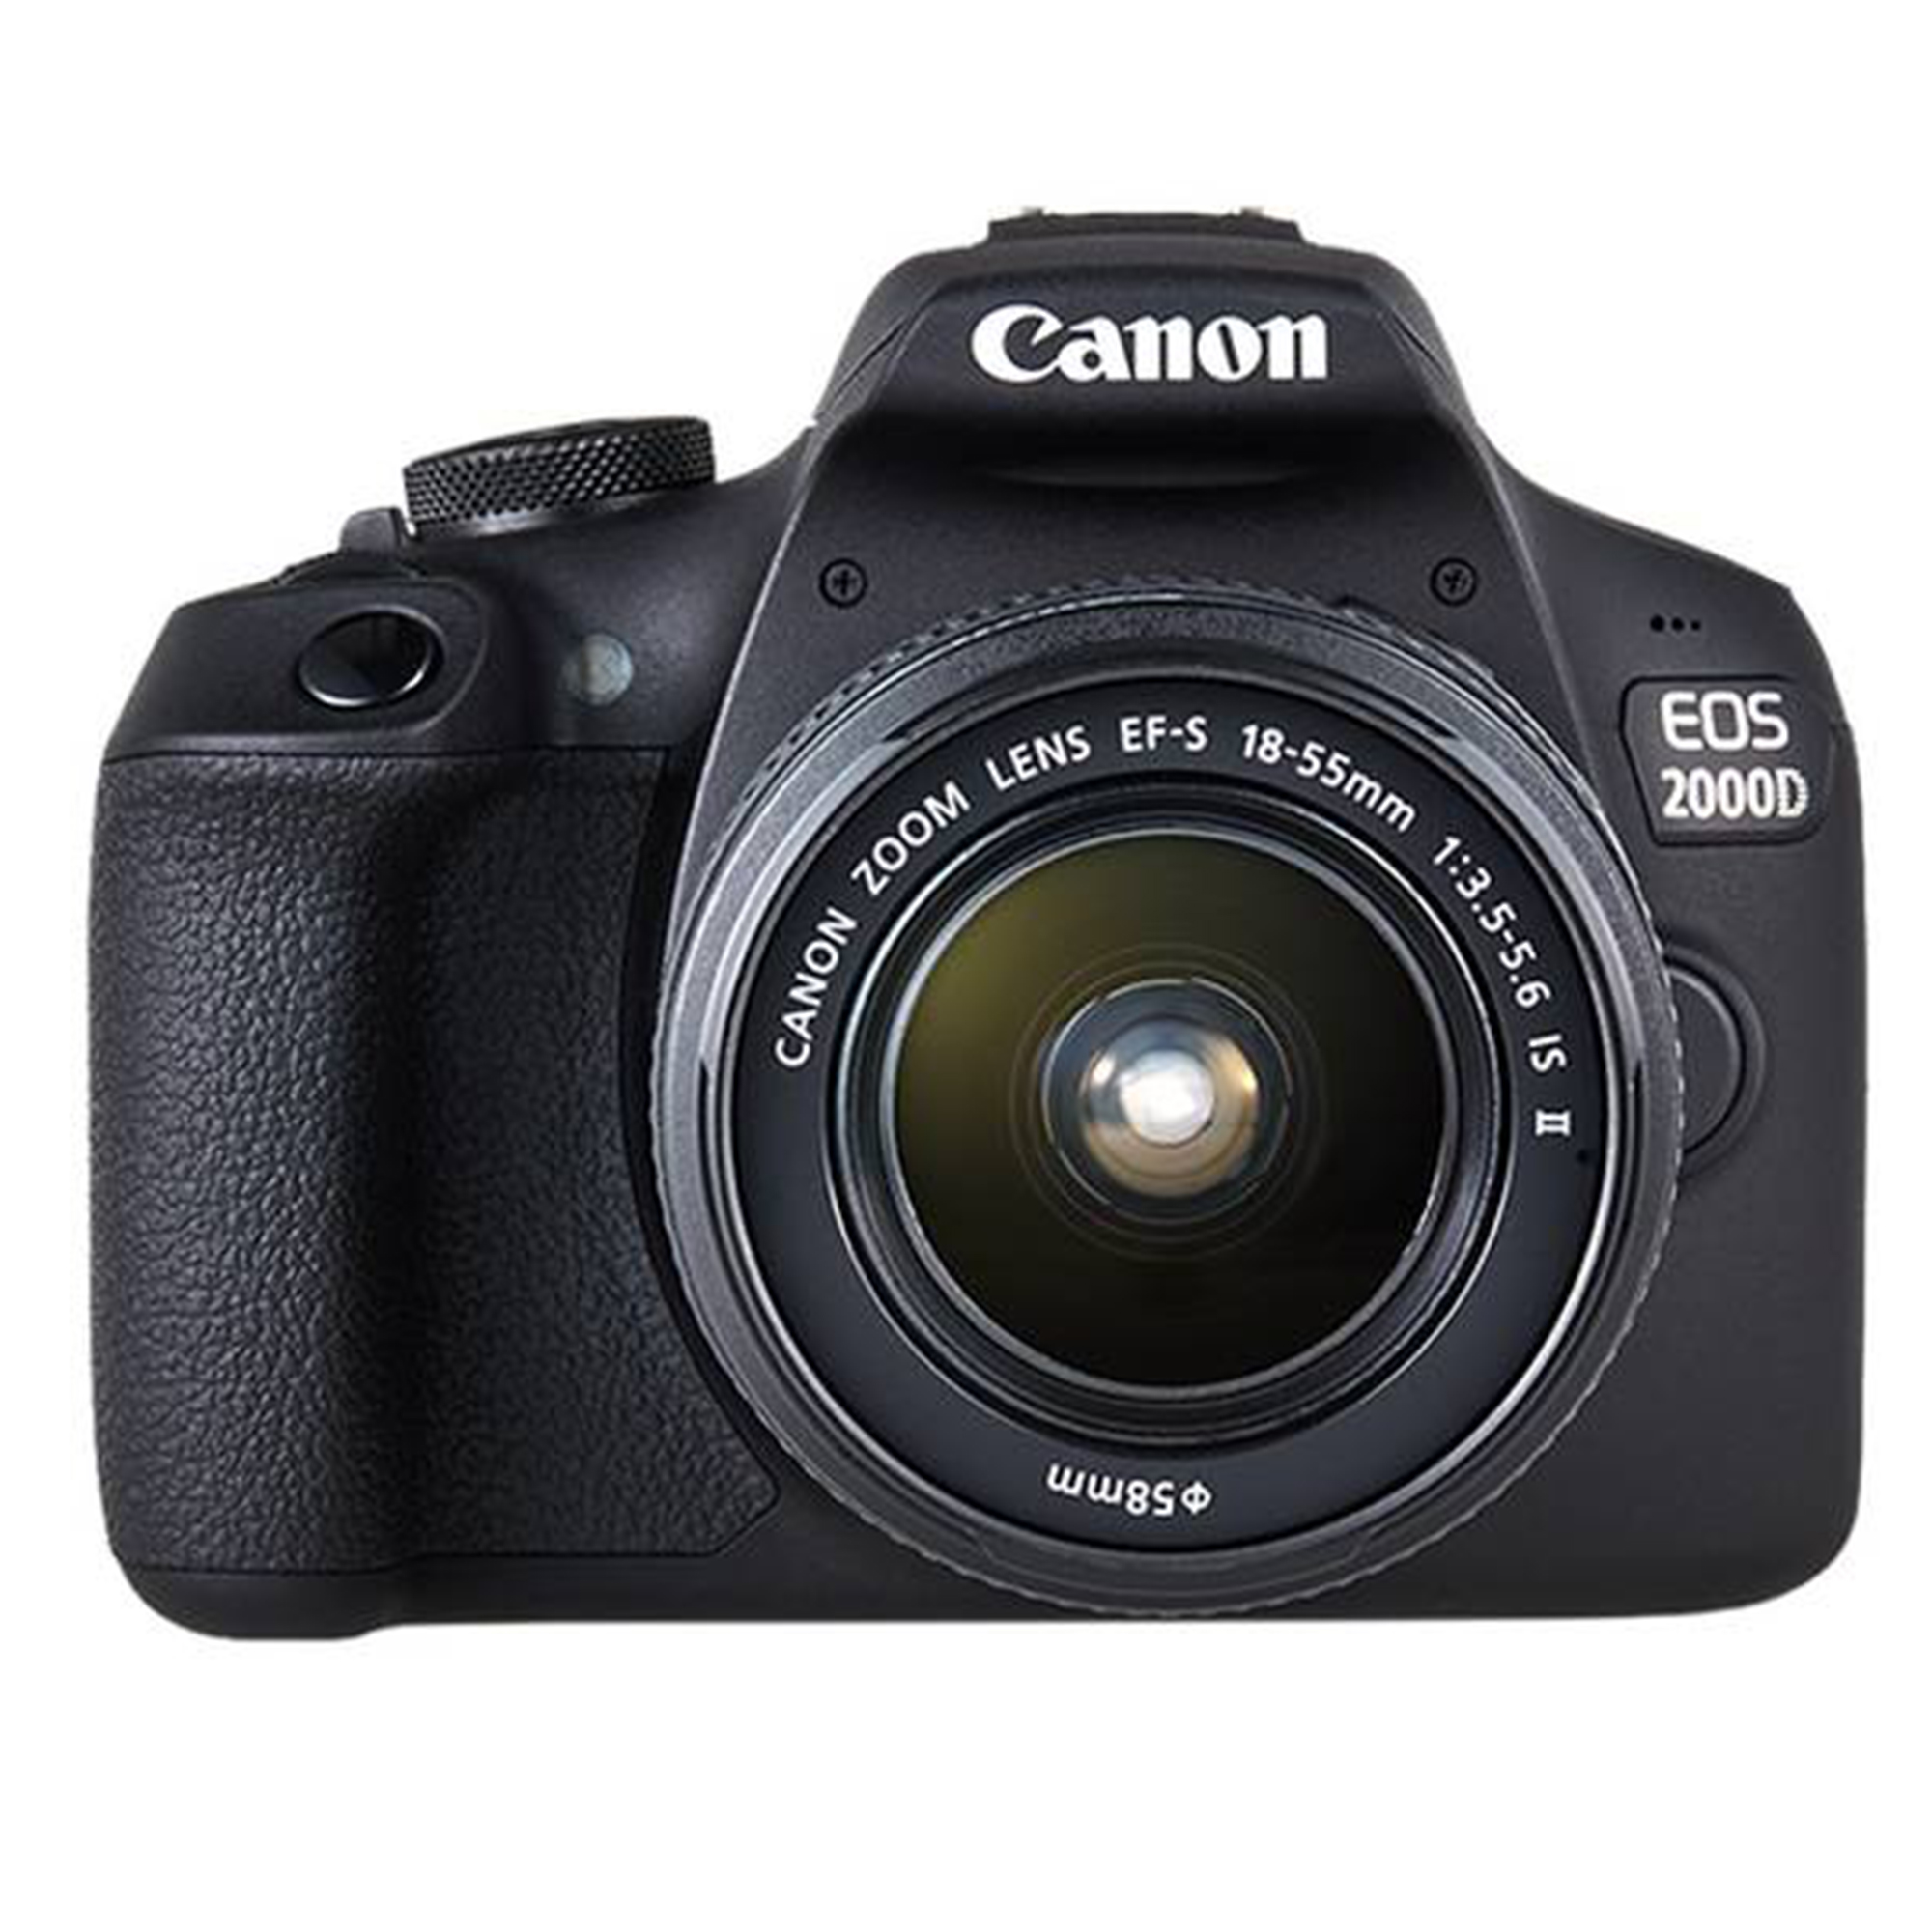 Canon EOS 2000D With 18-55mm Lens IS Kit + 8 GB Memory Card Free